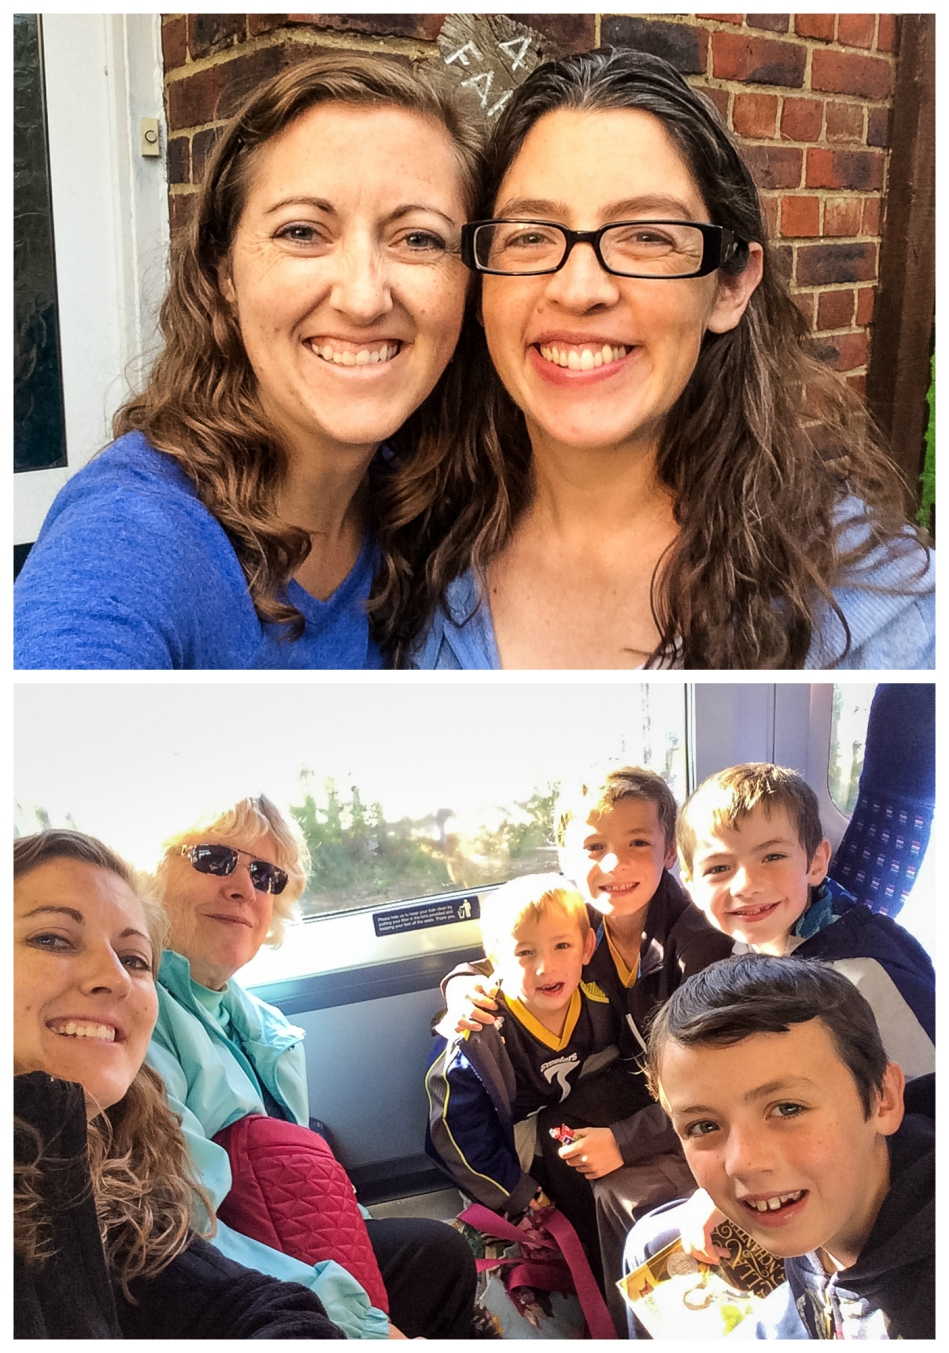 Finally got a sister photo! The next day Mom and I took the boys to Windsor Castle on the train.